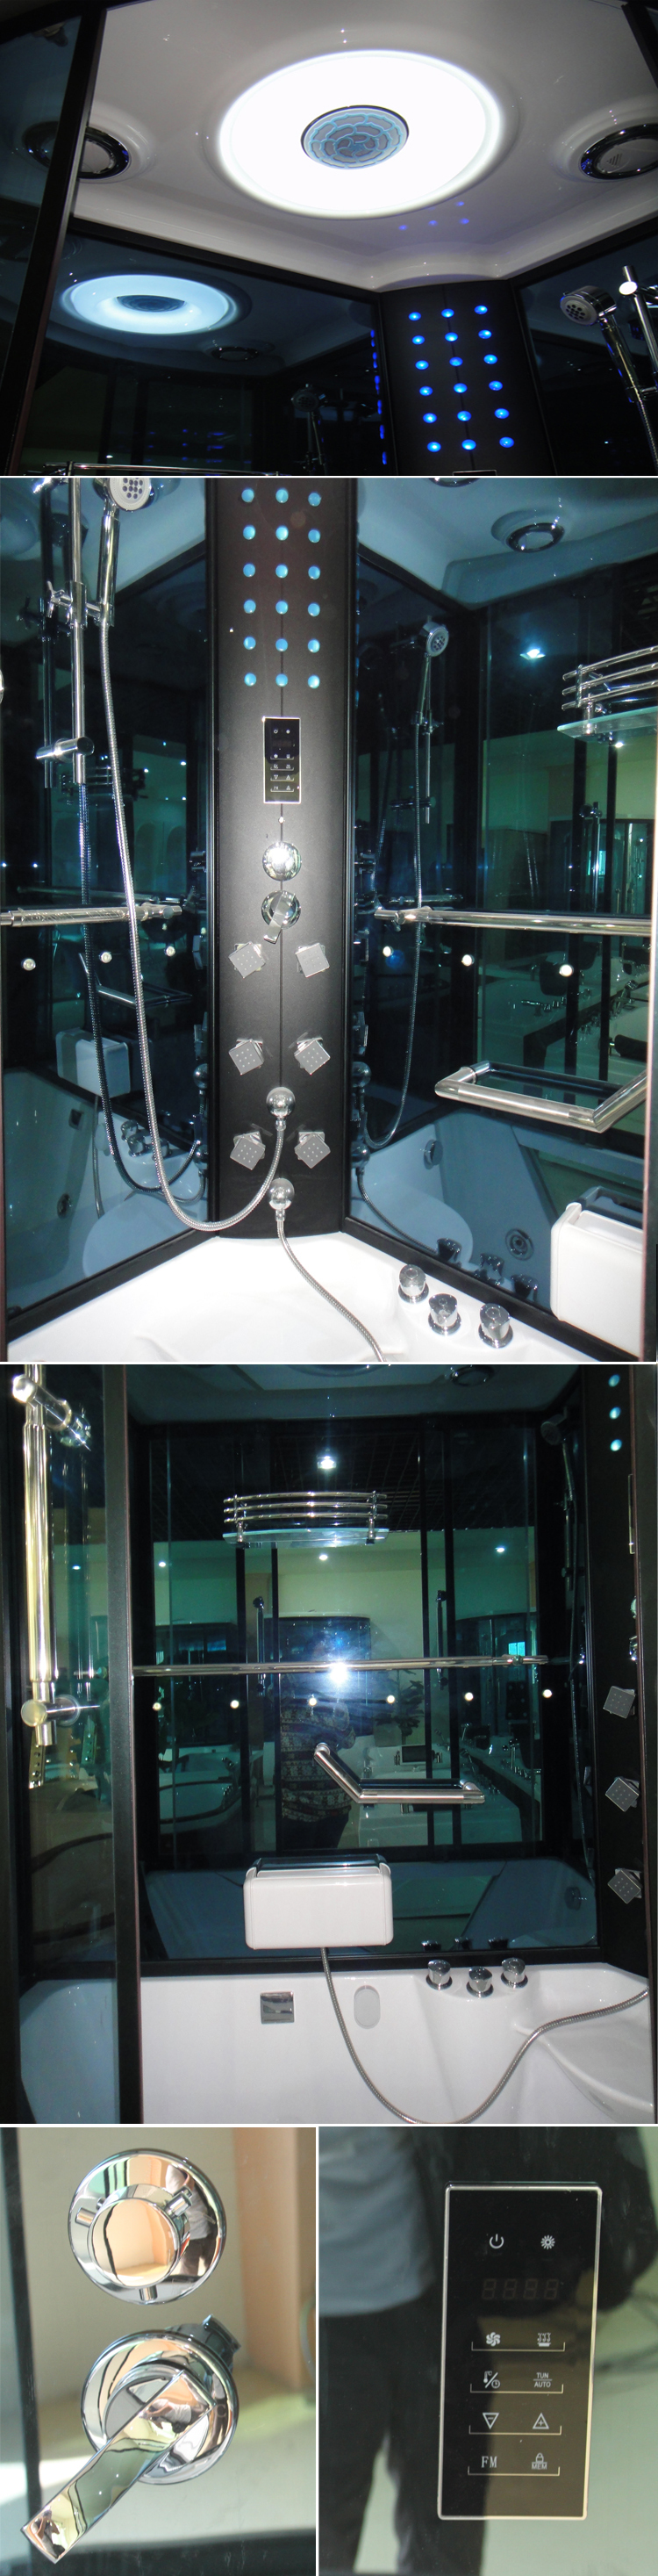 HS-SR073 shower spa enclosure/ deluxe steam room/ enclosed bath shower steam